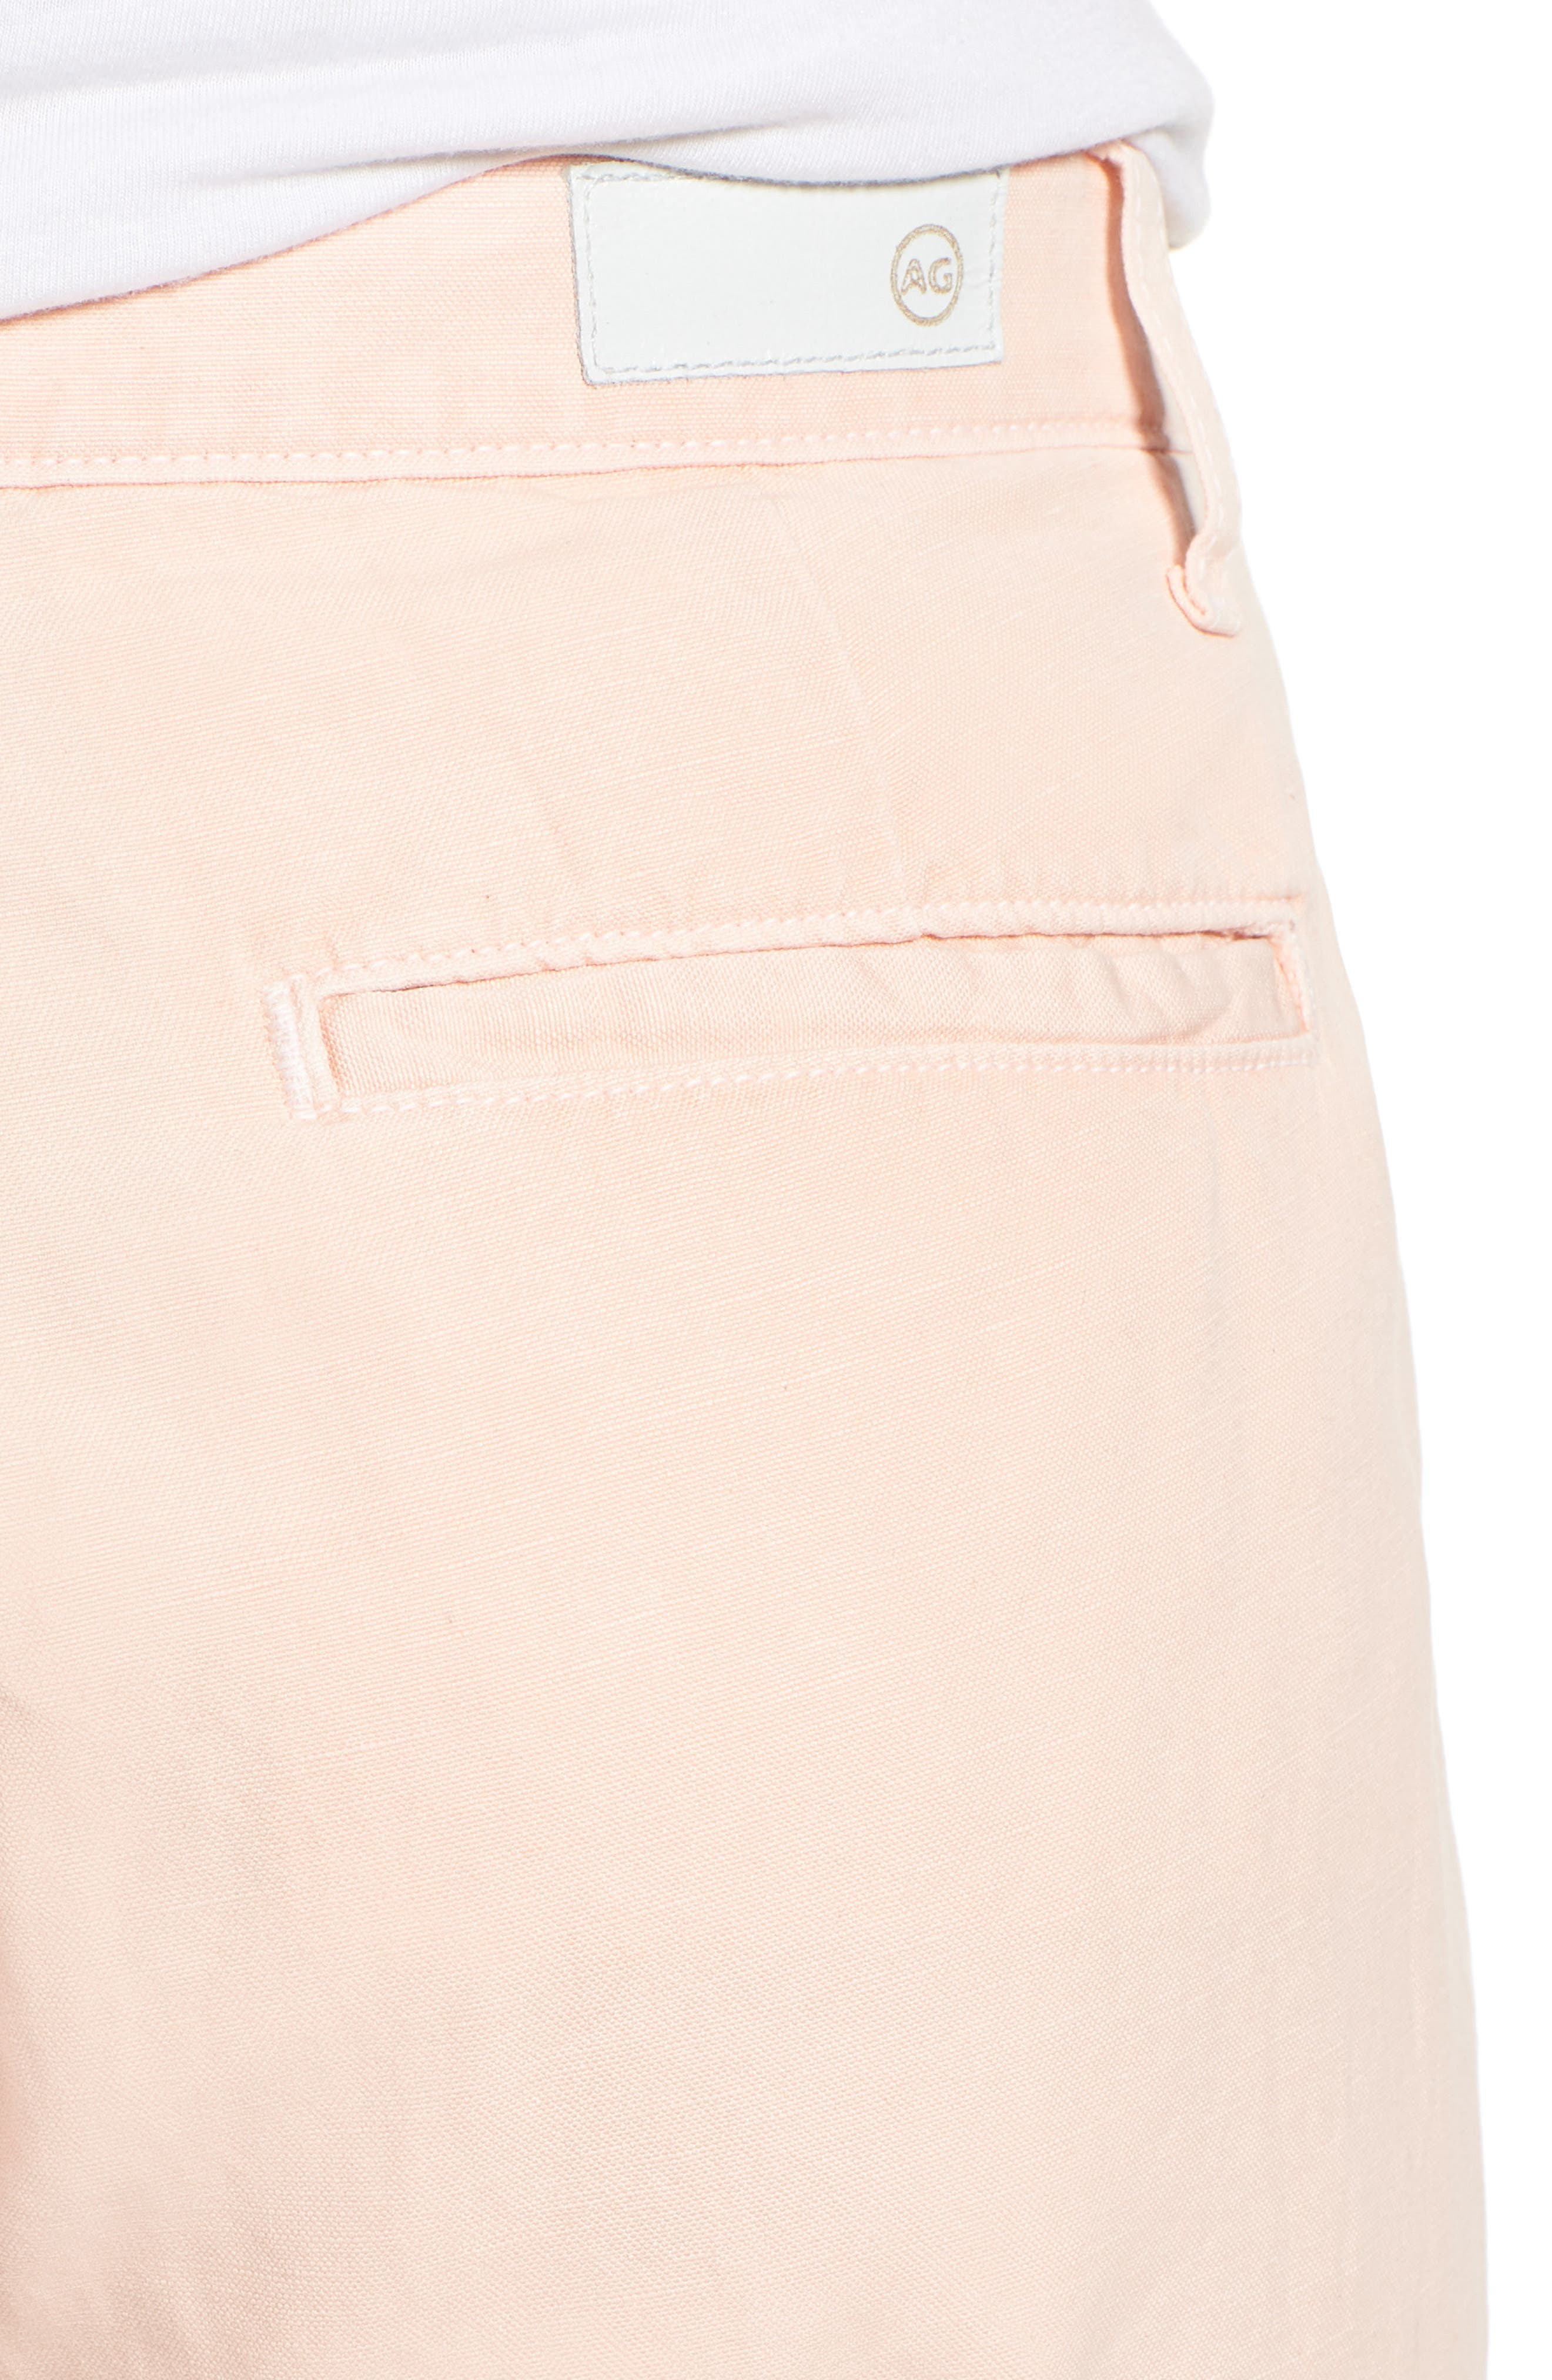 Caden Crop Twill Trousers,                             Alternate thumbnail 6, color,                             Sulfur Prism Pink